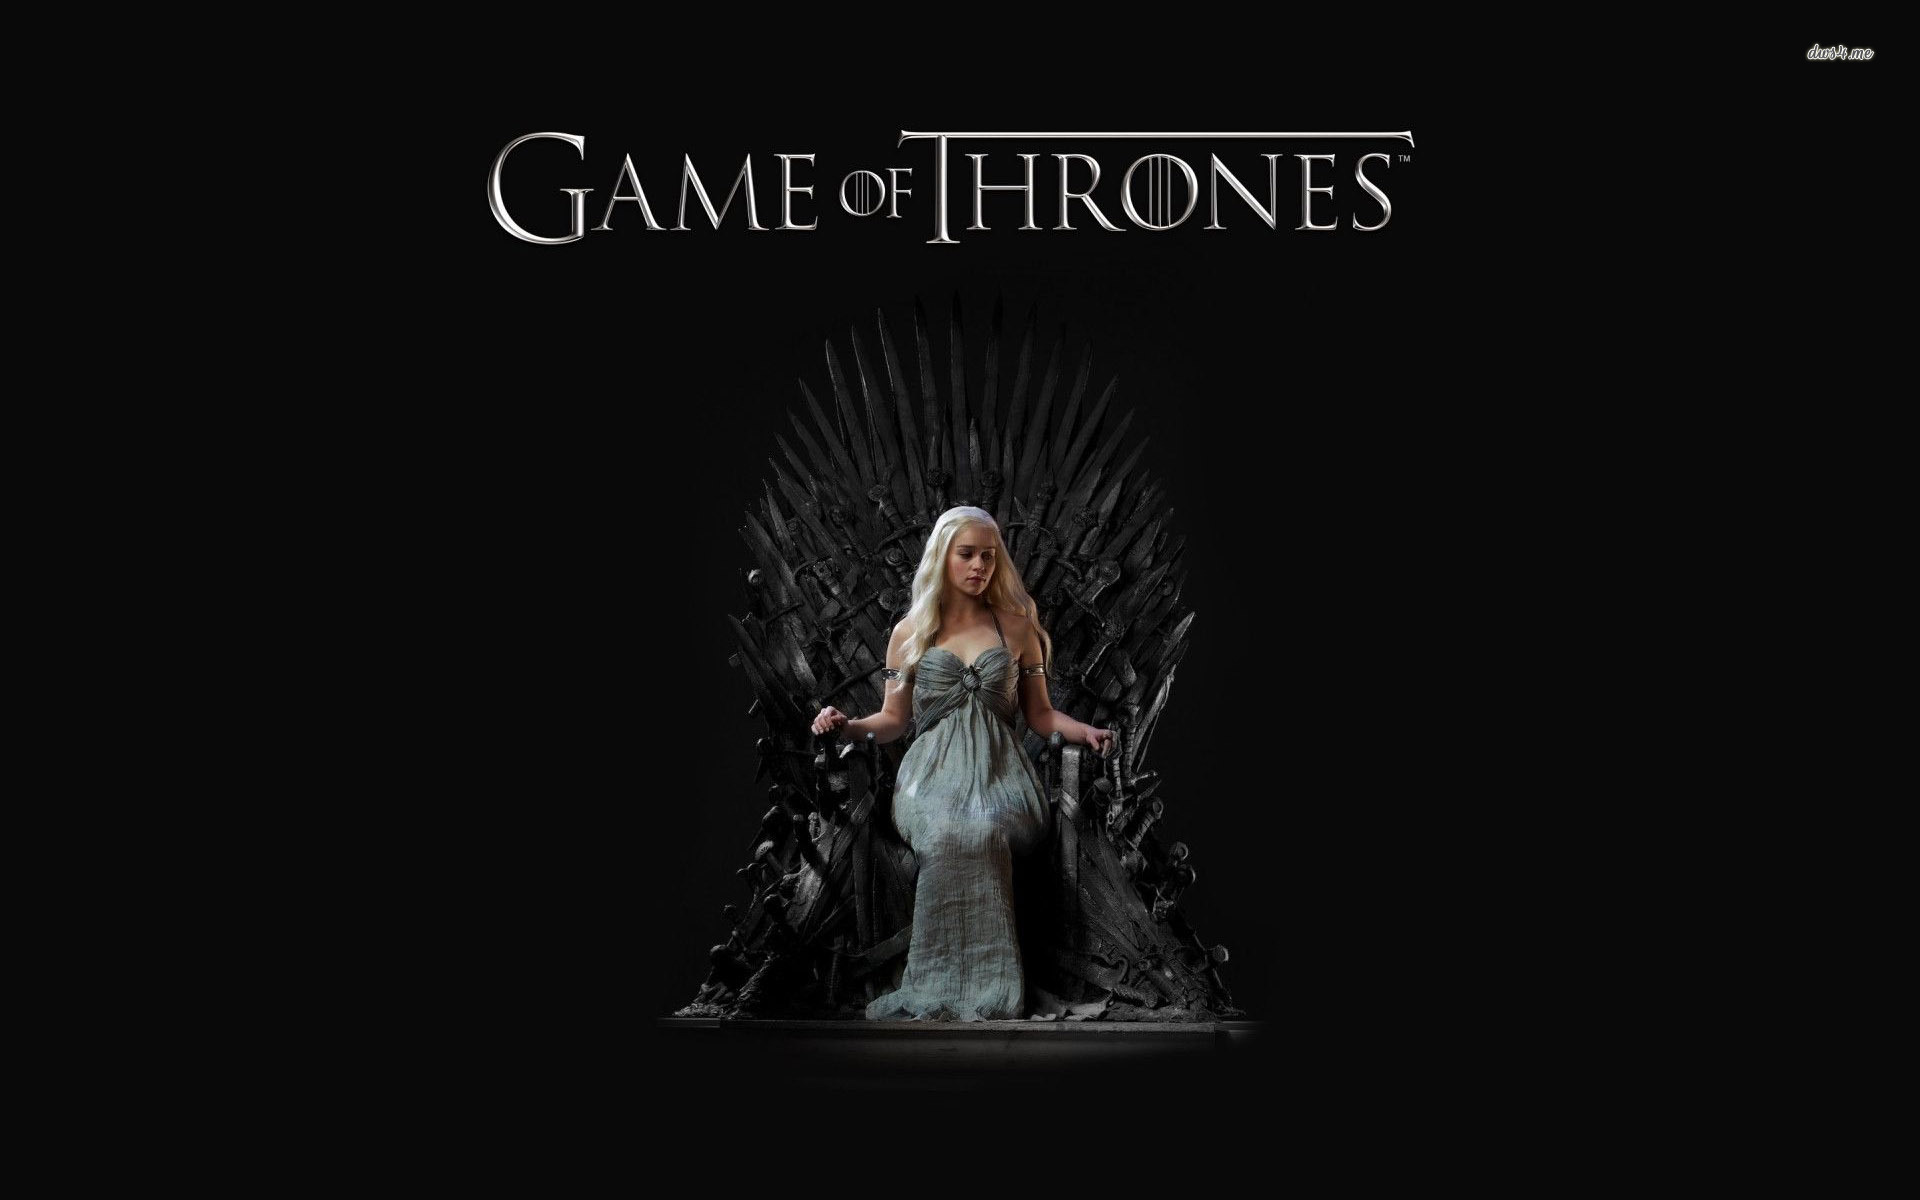 Game of Thrones wallpapers 95478